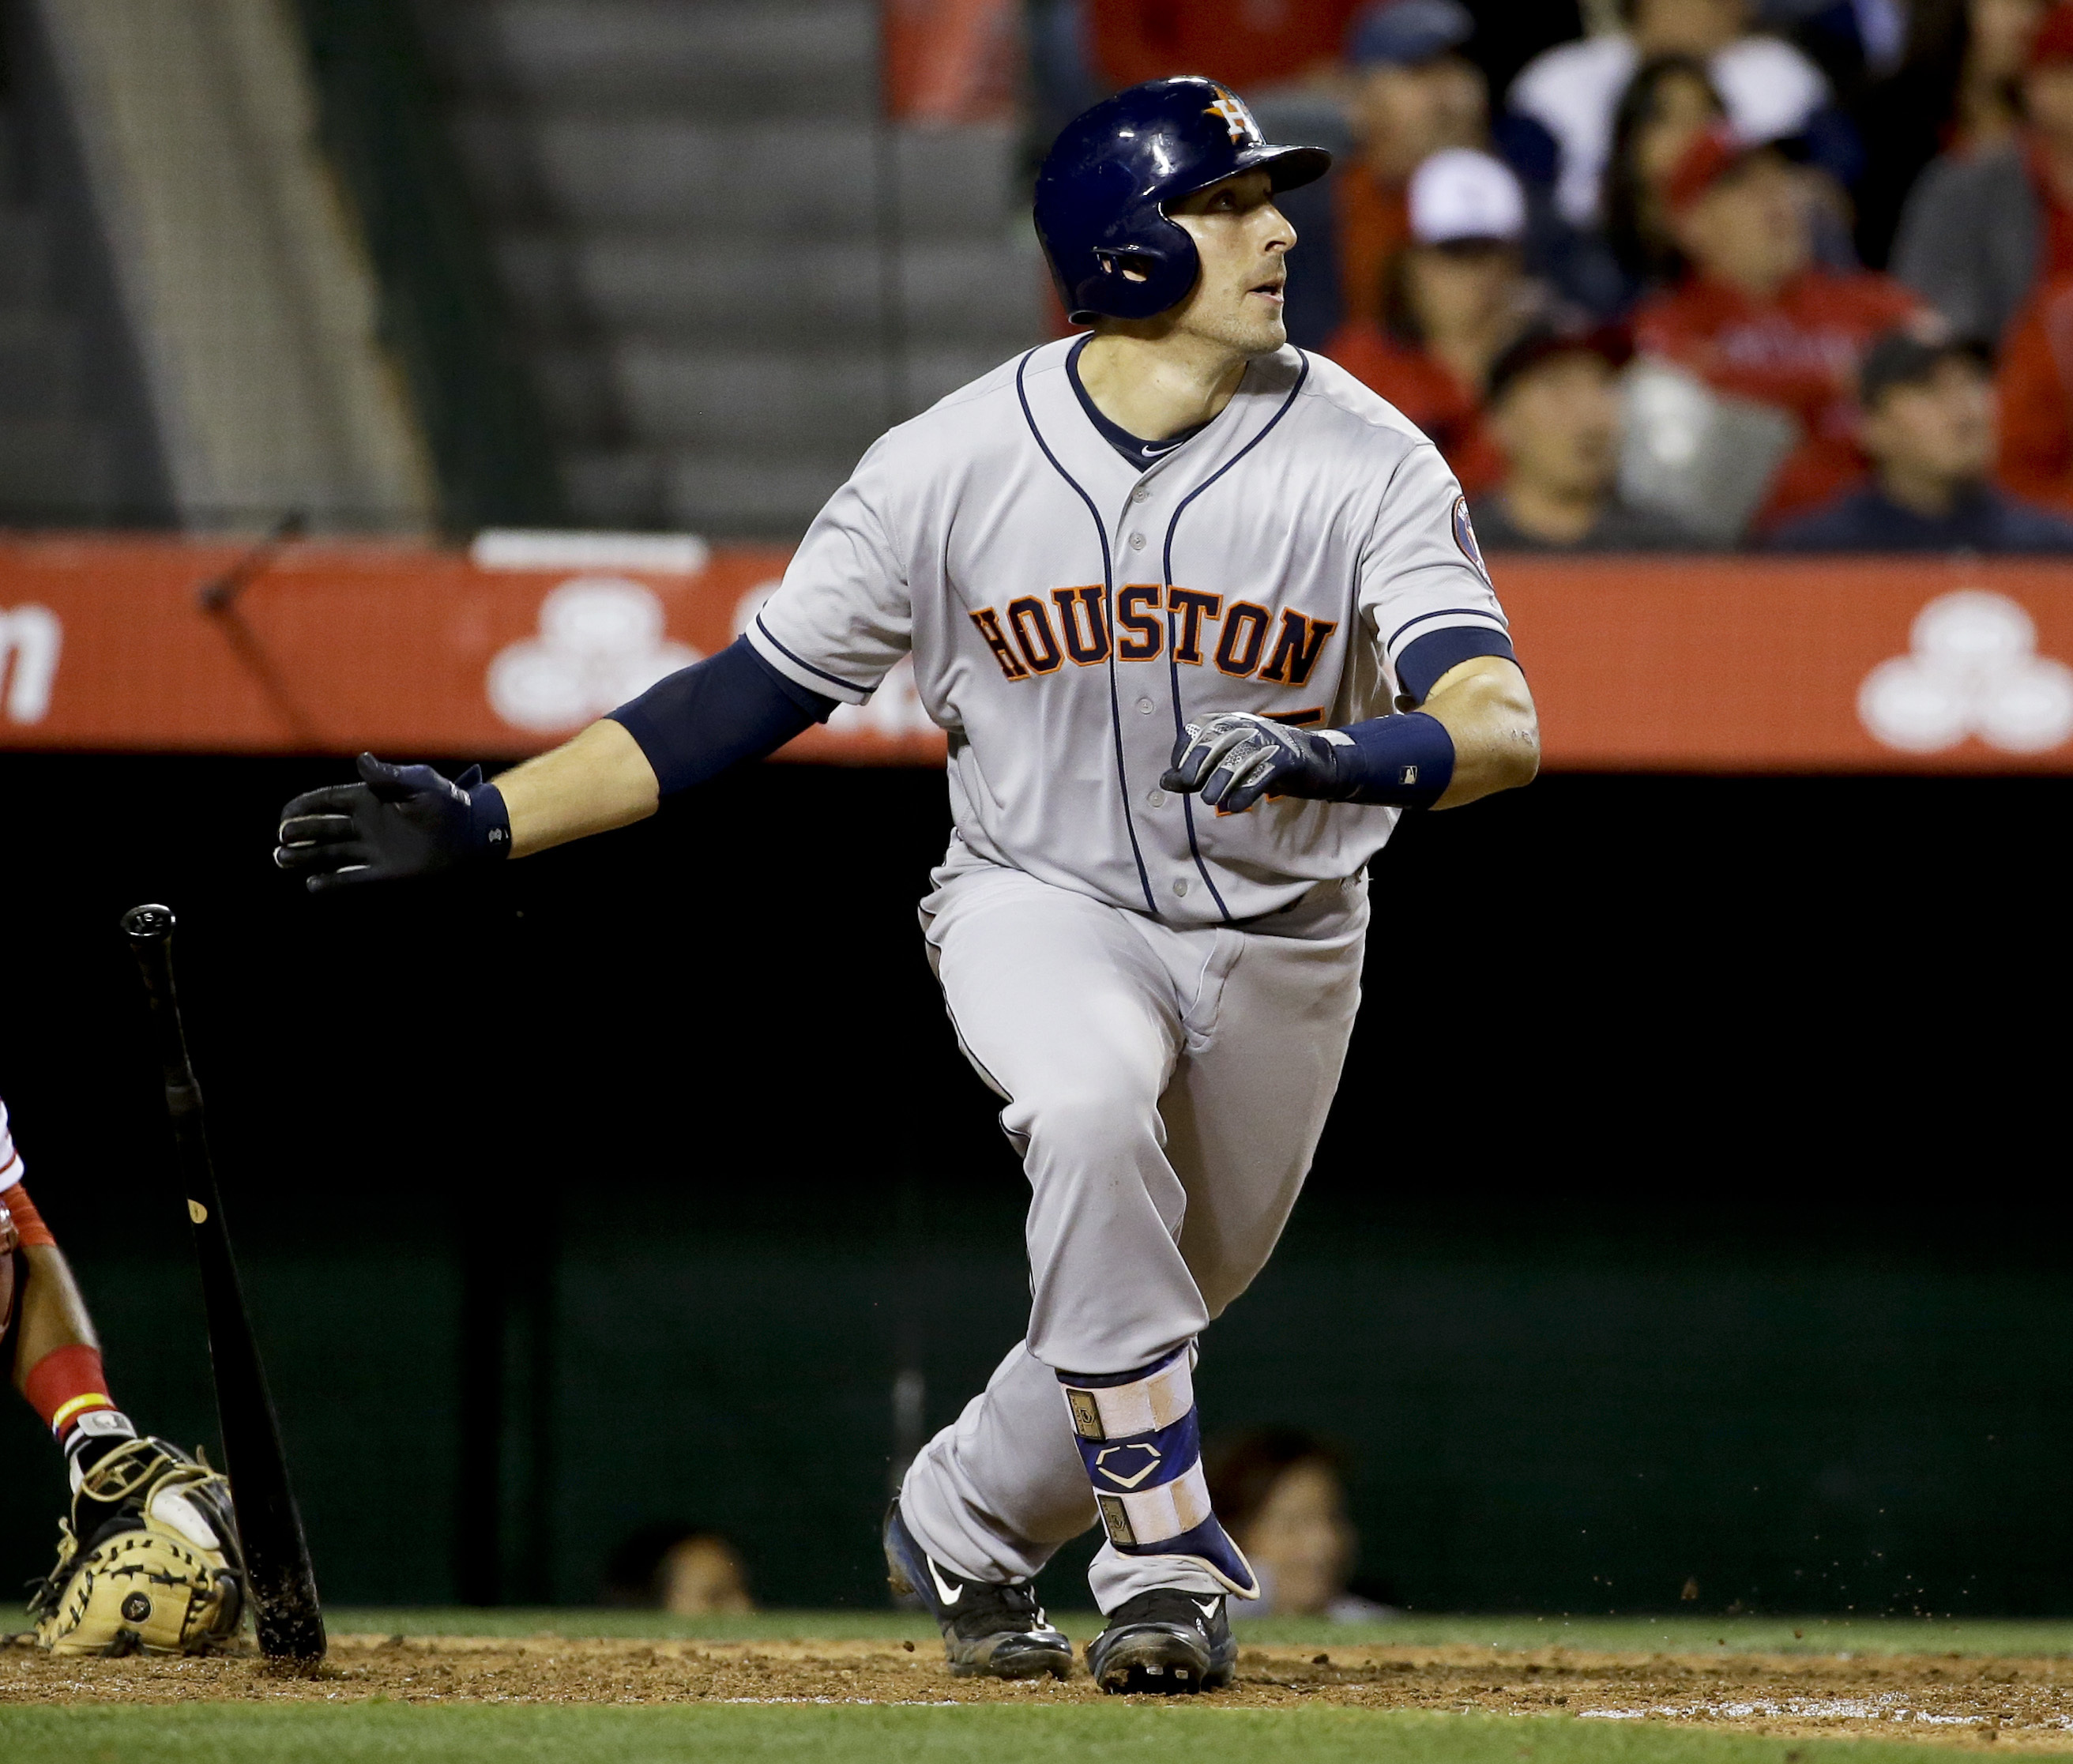 Houston Astros' Jason Castro watches his two-run home run against the Los Angeles Angels during the sixth inning of a baseball game in Anaheim, Calif., Saturday, May 28, 2016. (AP Photo/Chris Carlson)